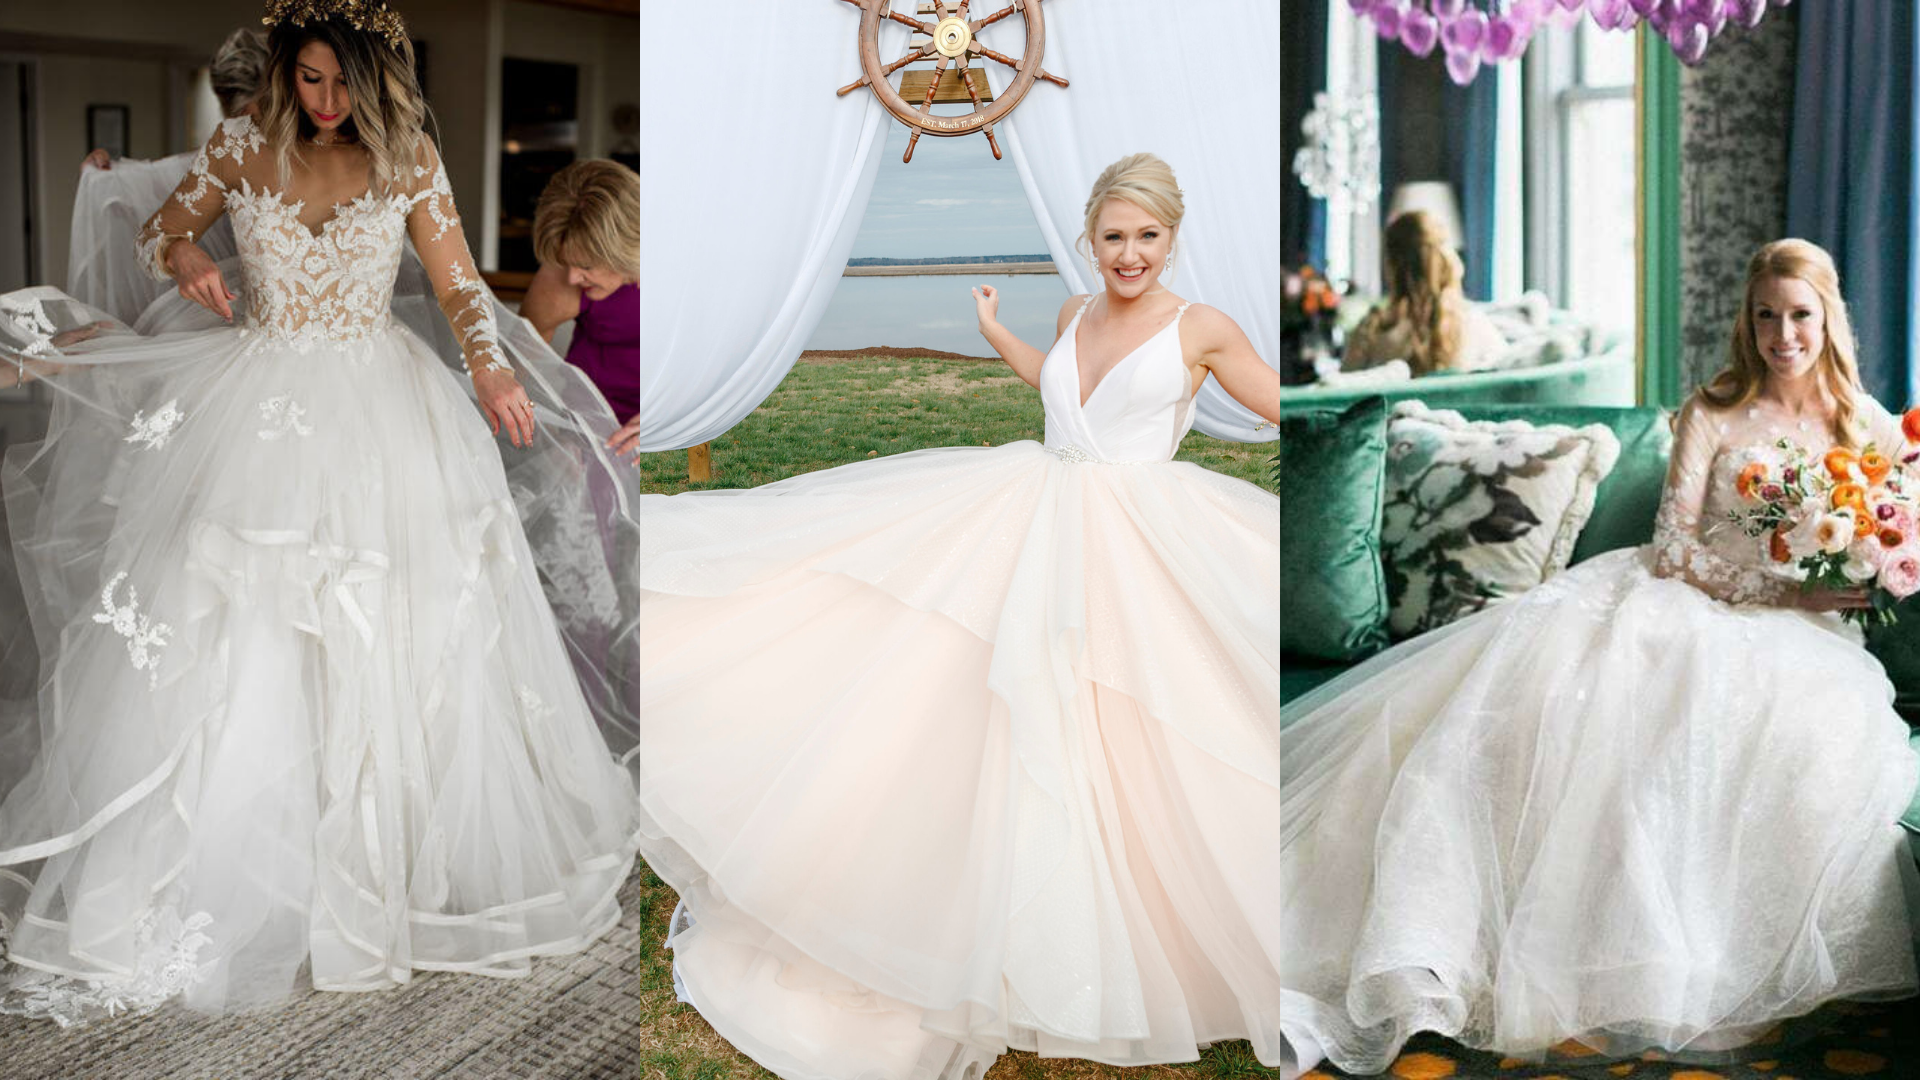 Ball gown wedding dresses for a bride's fairy tale wedding.